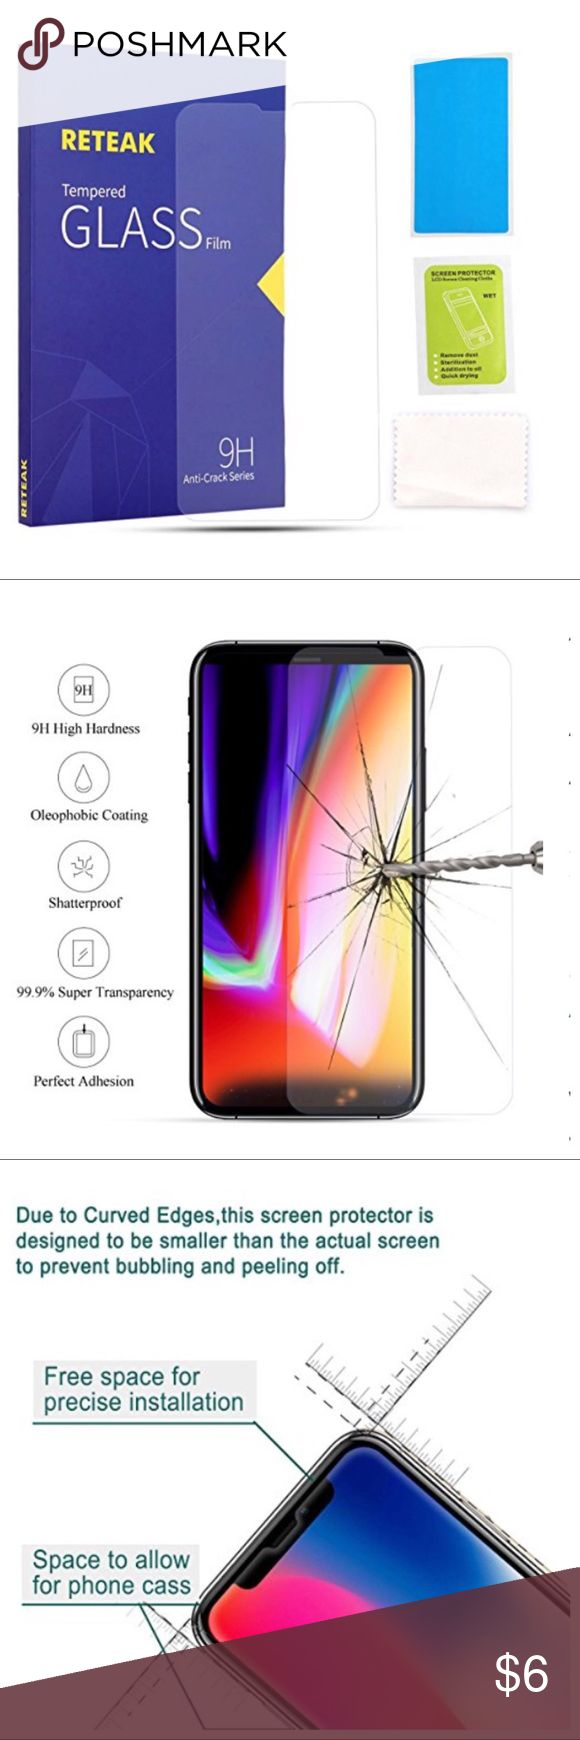 IPHONE 10 SCREEN PROTECTOR iPhone X Screen Protector, 9H Anti-Crack Series Tempered Glass Film with HD Premium Anti-Burst Anti-Fingerprint Anti-Bubble for Apple iPhone X ( 5.8-inch) (0.30mm) Accessories Phone Cases